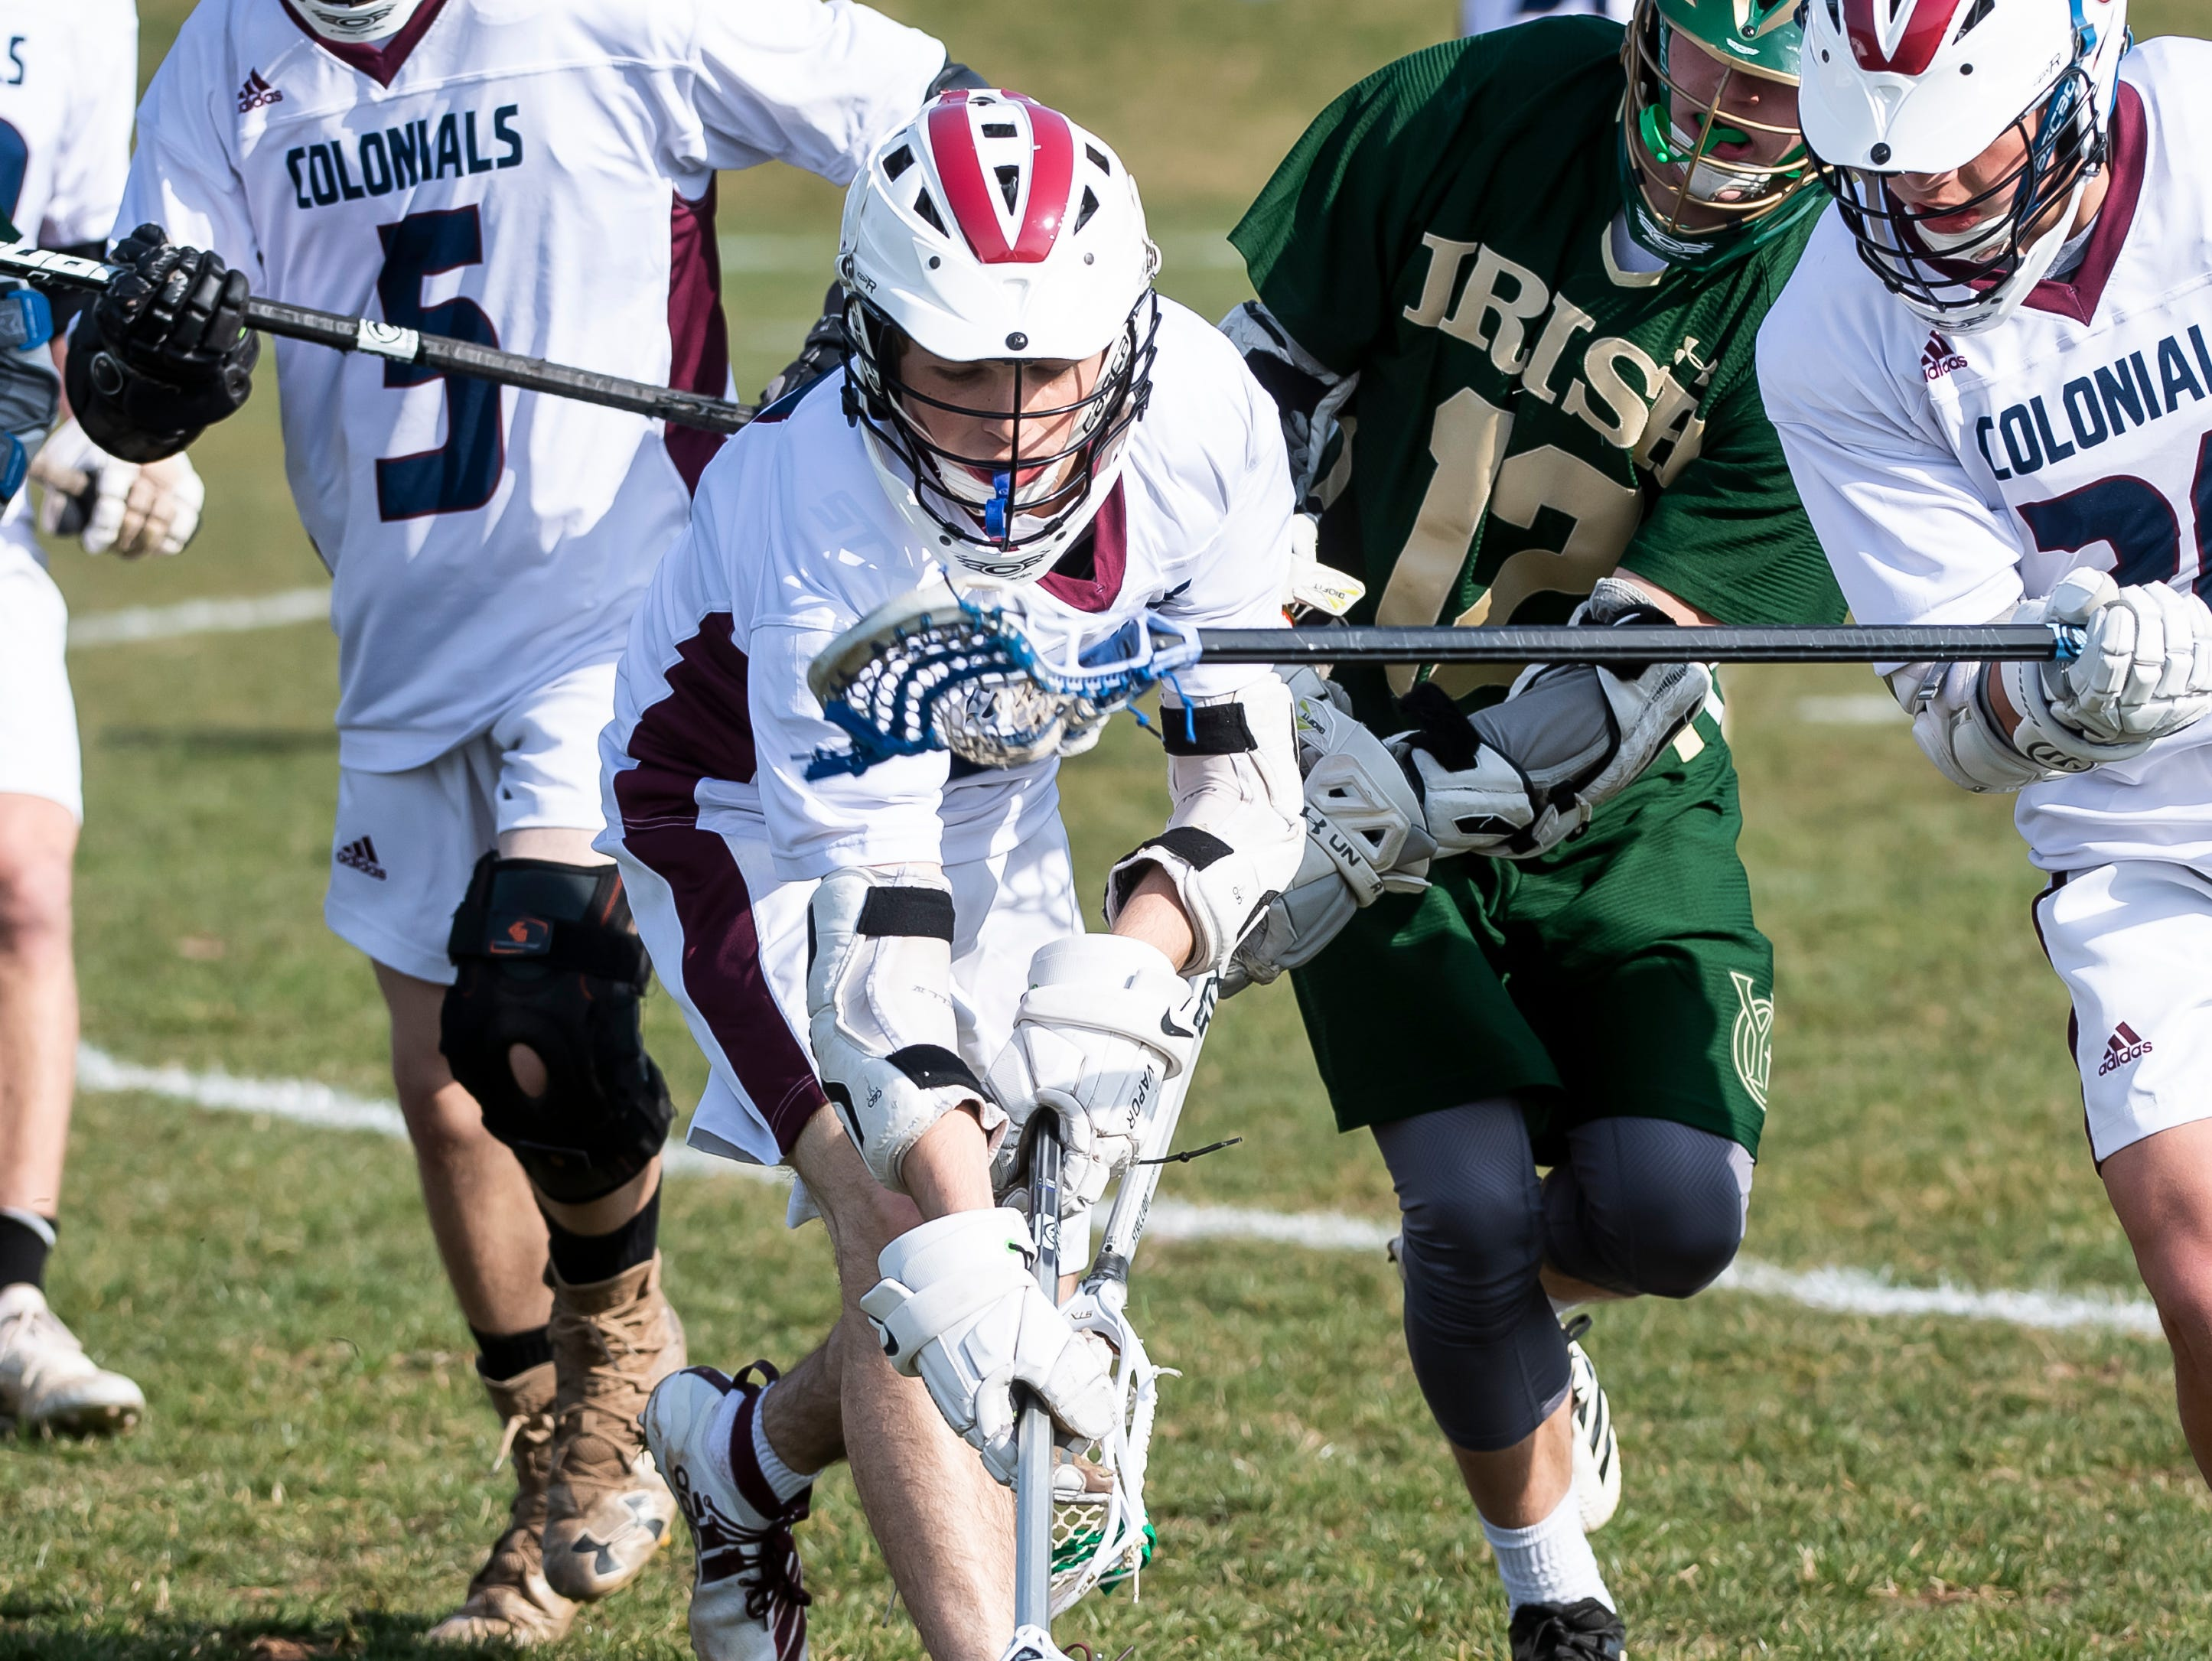 New Oxford's Connor Eisenhart tries to scoop up a ground ball during a YAIAA boys' lacrosse game against York Catholic on Thursday, April 4, 2019. York Catholic won 14-8.